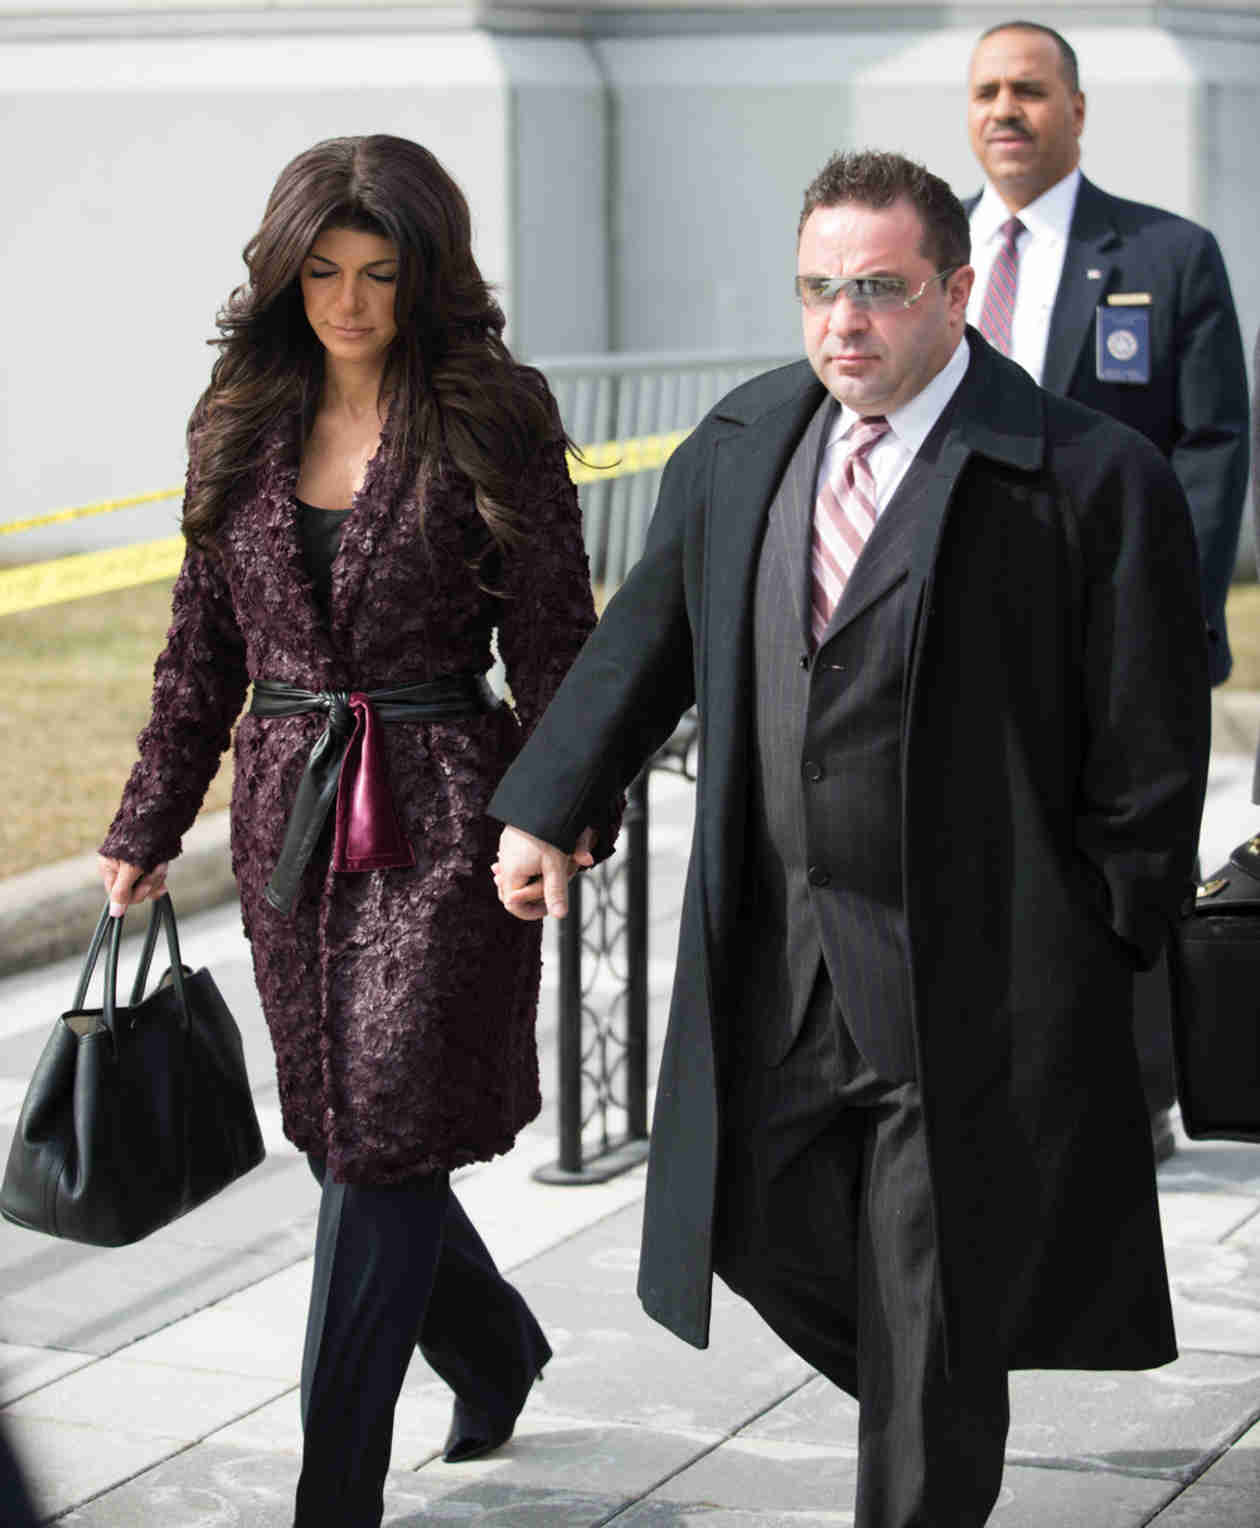 Teresa and Joe Giudice Plead Guilty to Fraud Charges (VIDEO)